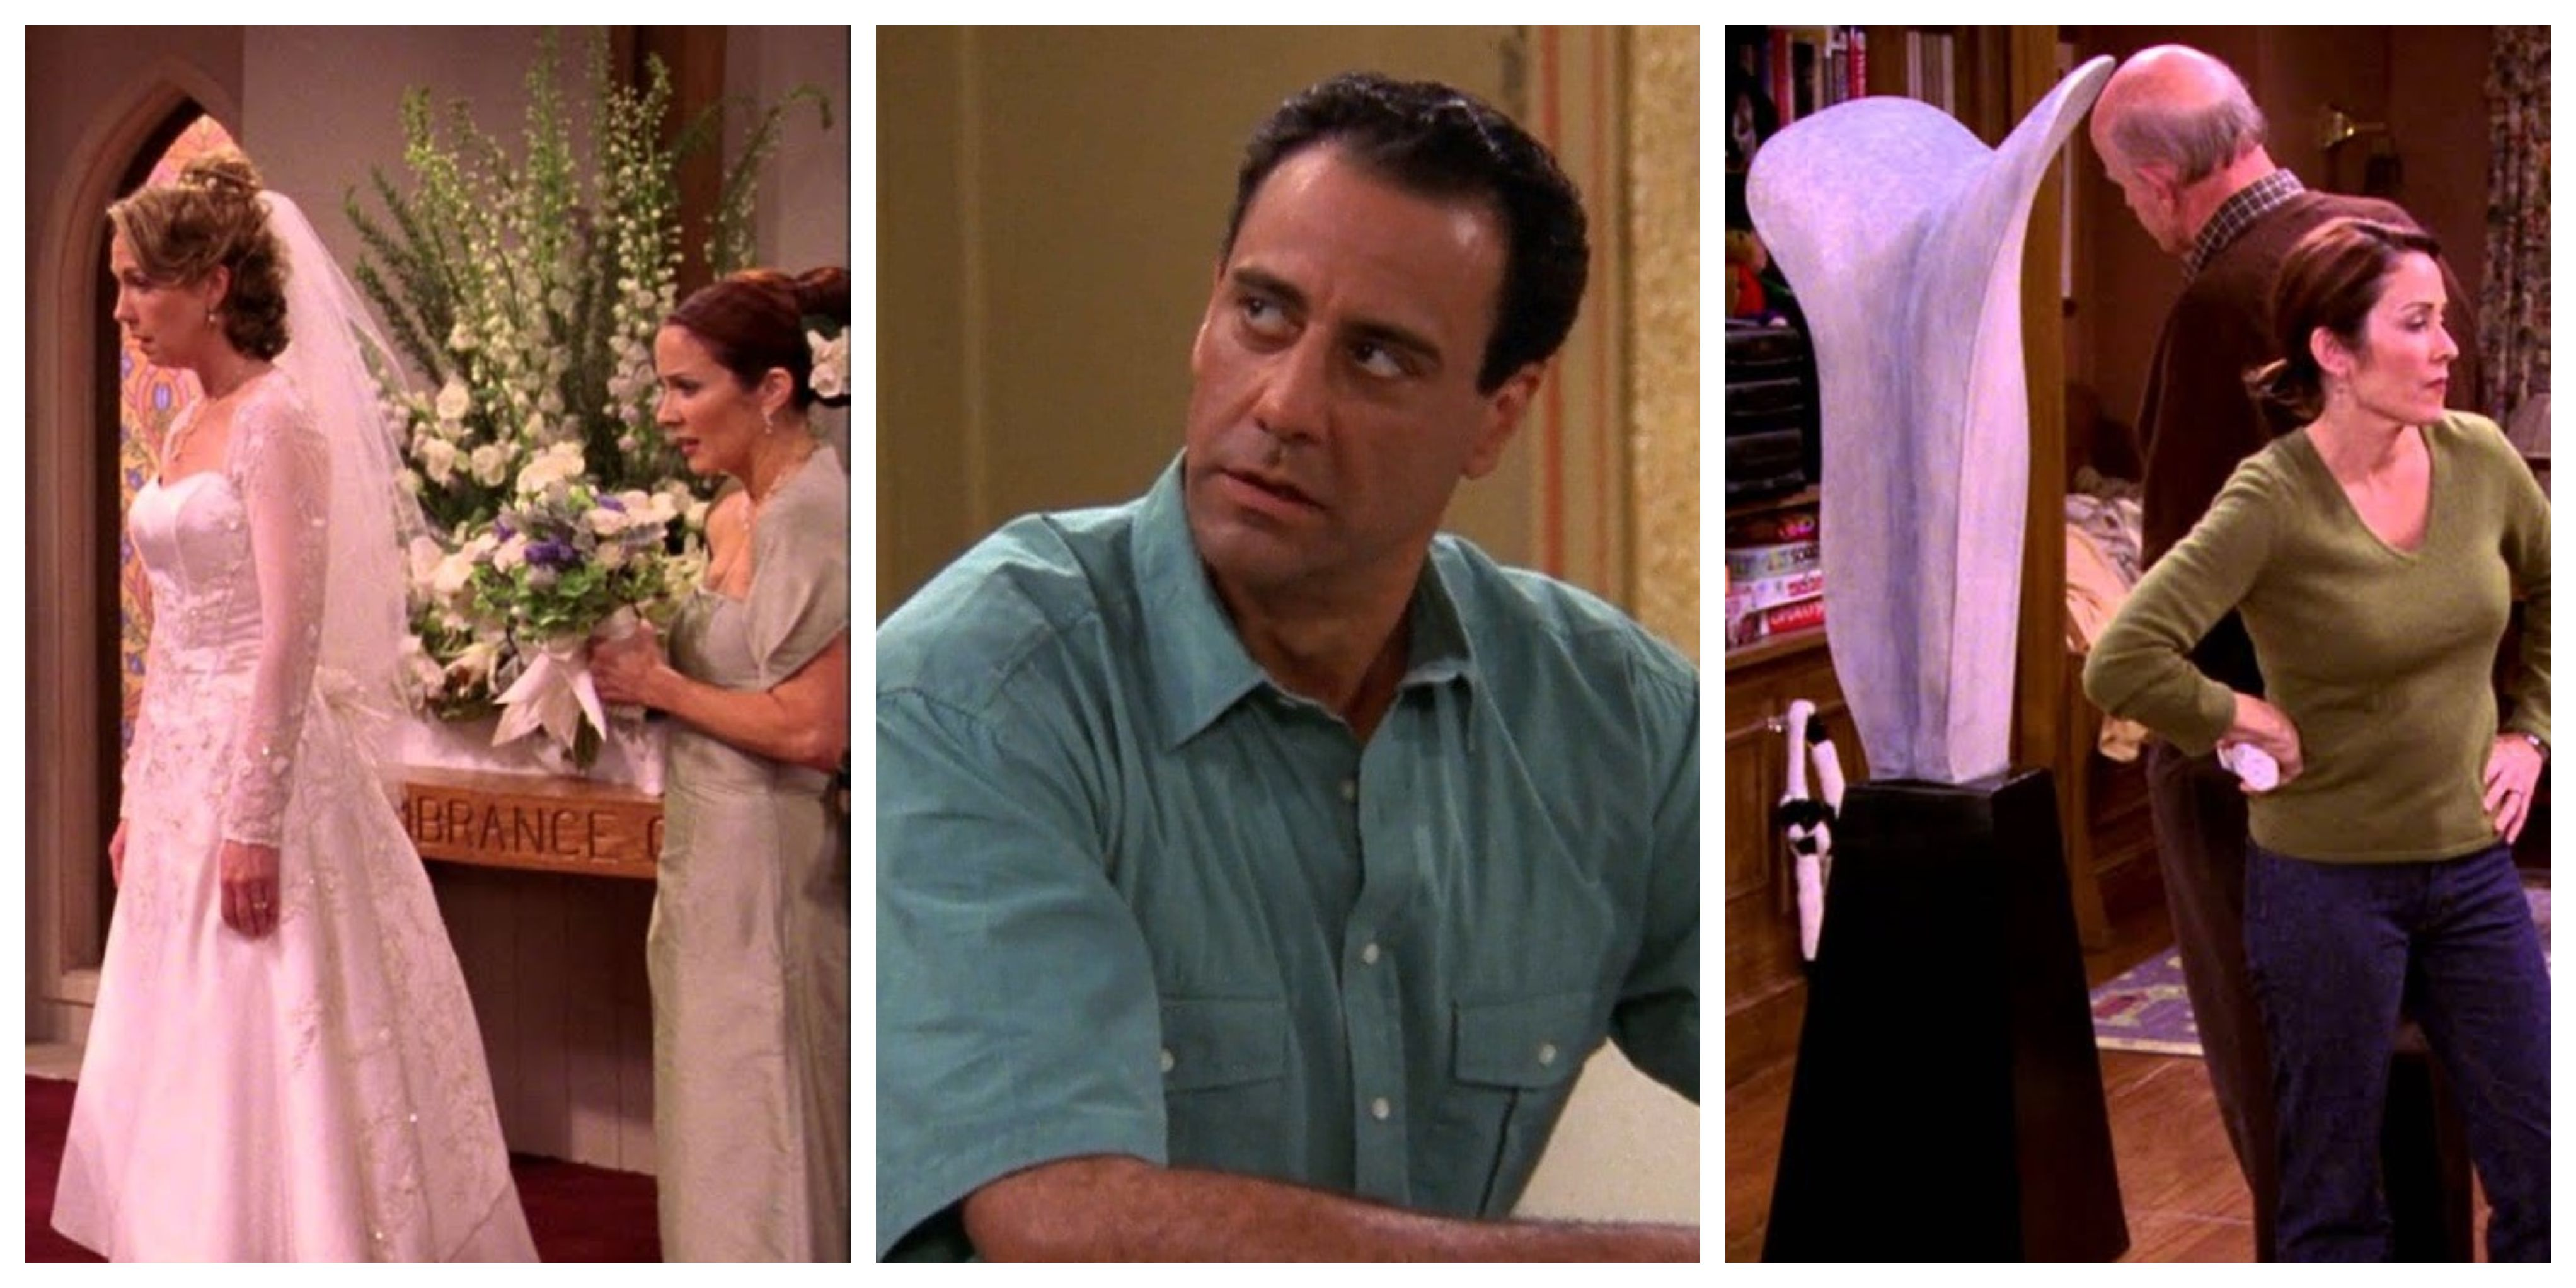 Everybody Loves Raymond: 5 Most Underrated Episodes (& 5 That Are Overrated)